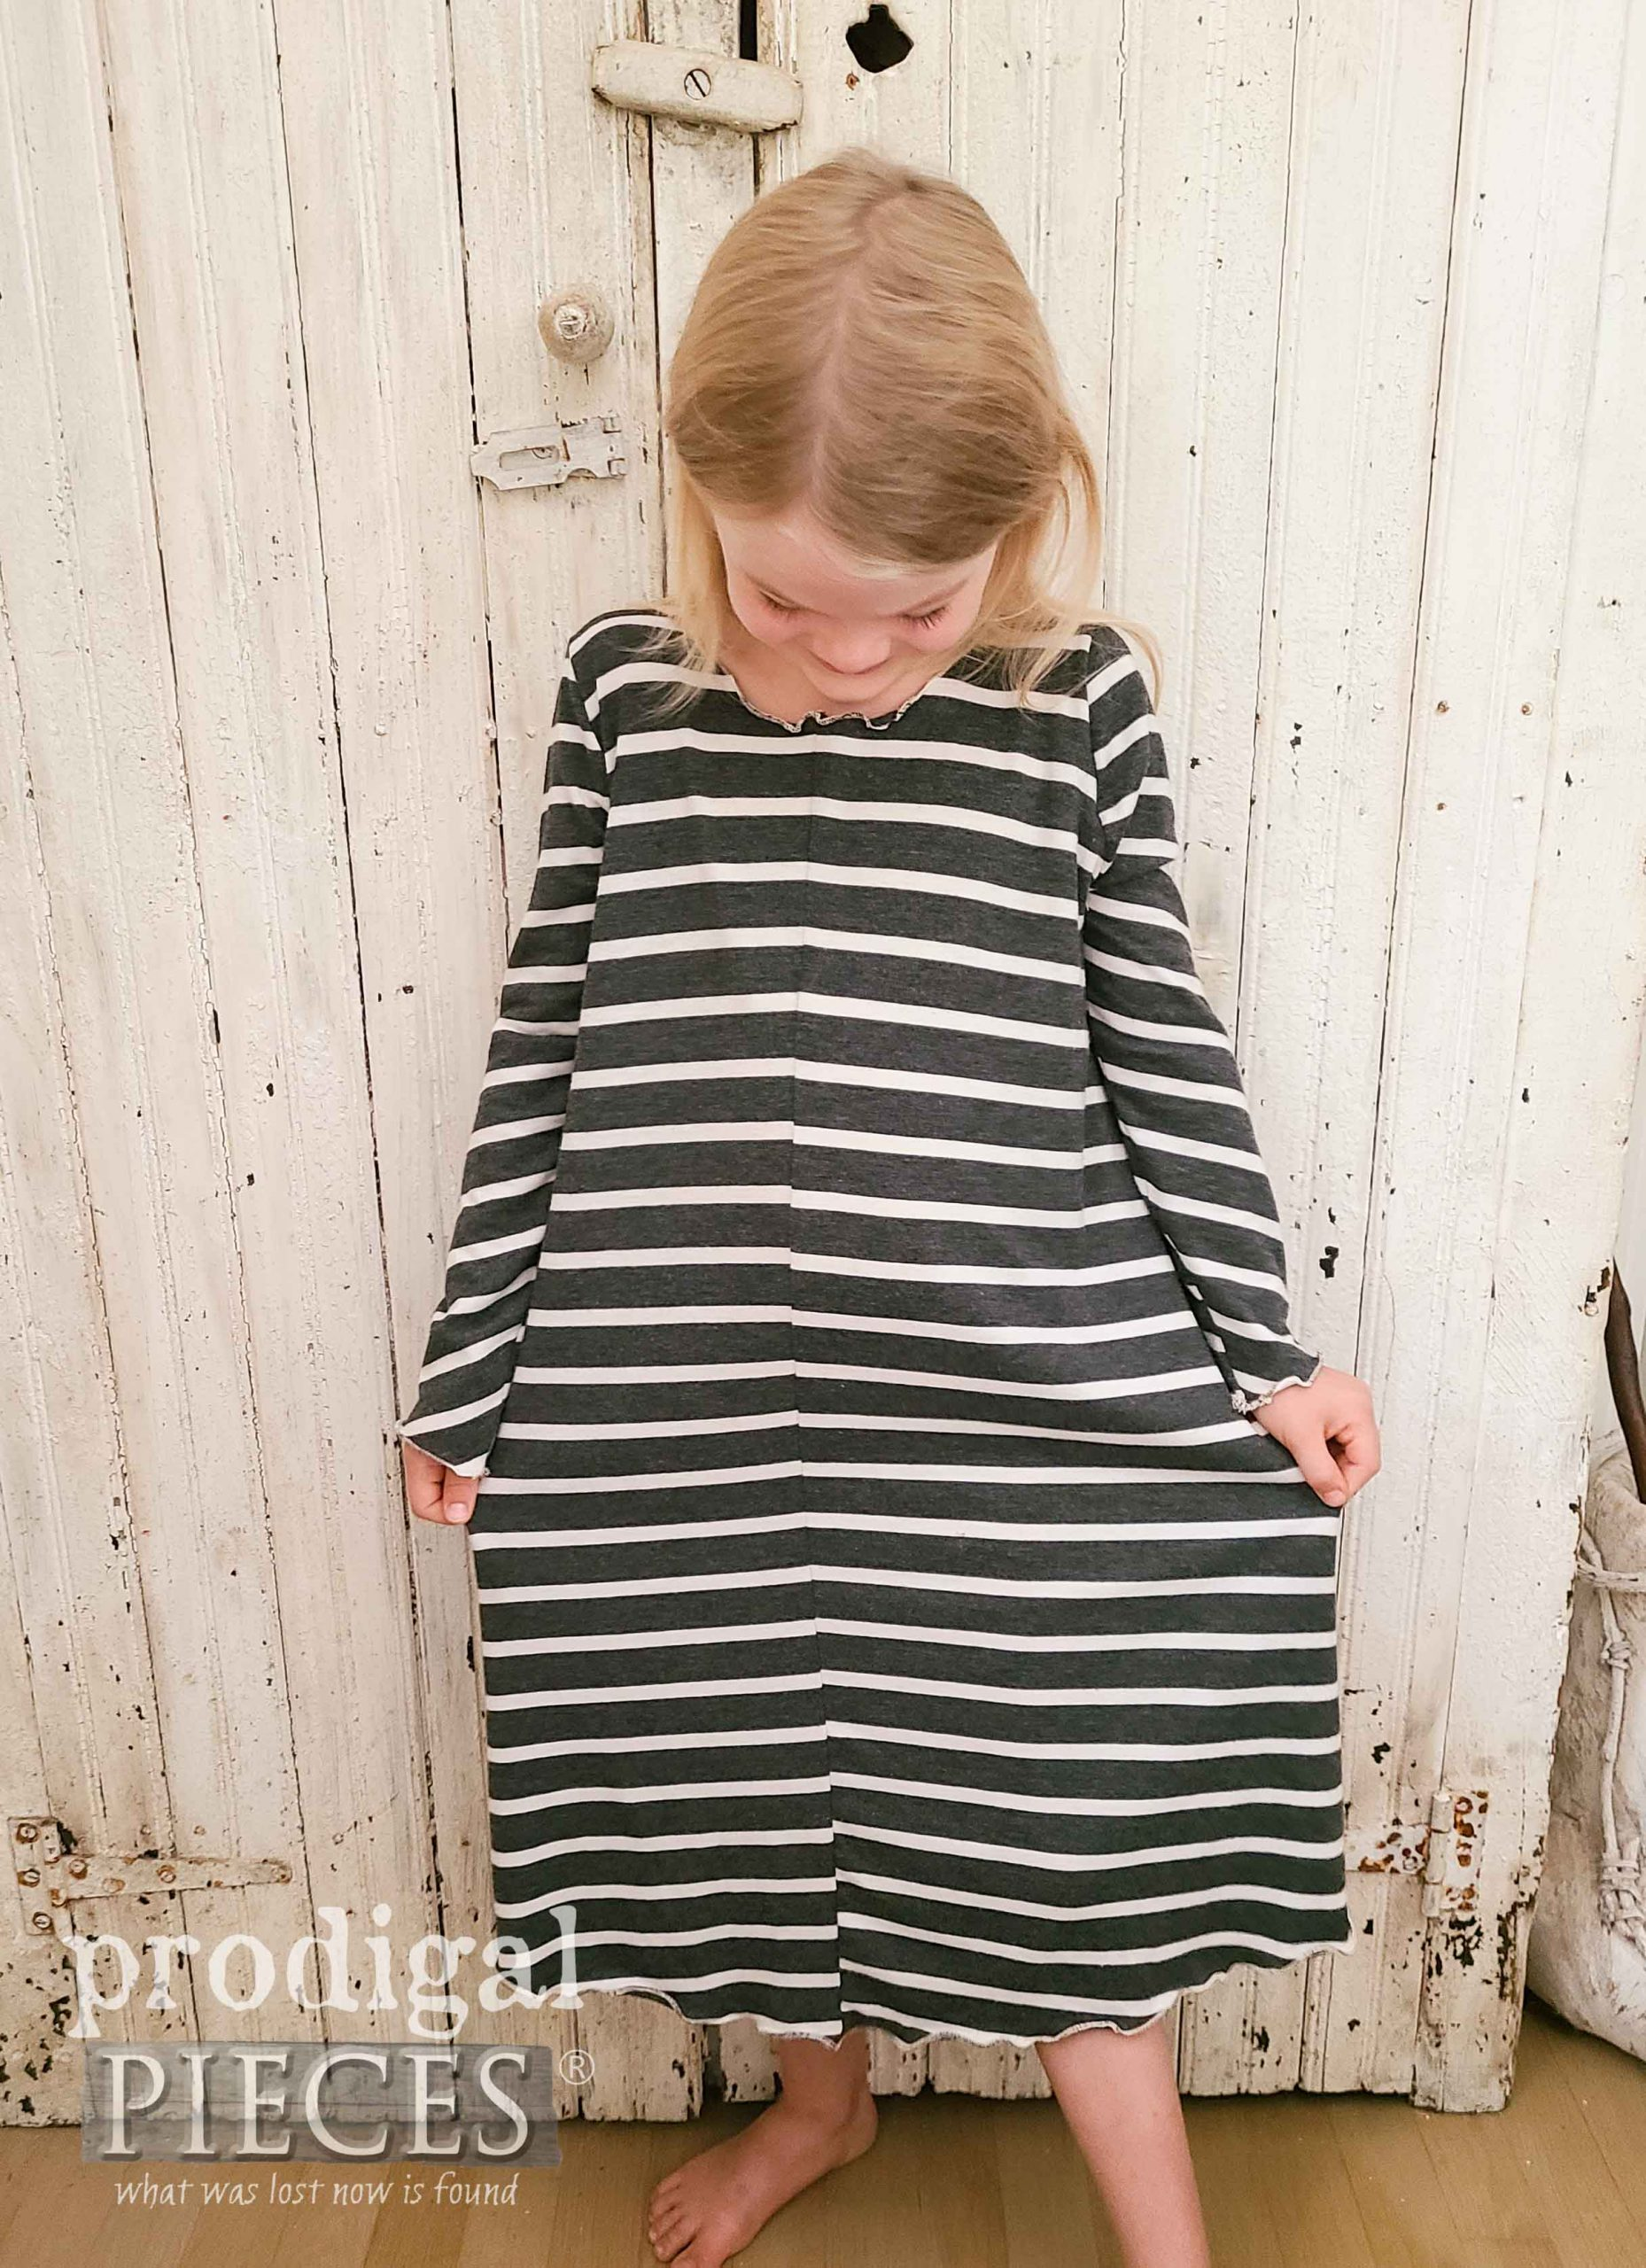 Long Sleeve Nightgown made from Refashioned Skirt by Larissa of Prodigal Pieces | prodigalpieces.com #prodigalpieces #sewing #fashion #handmade #diy